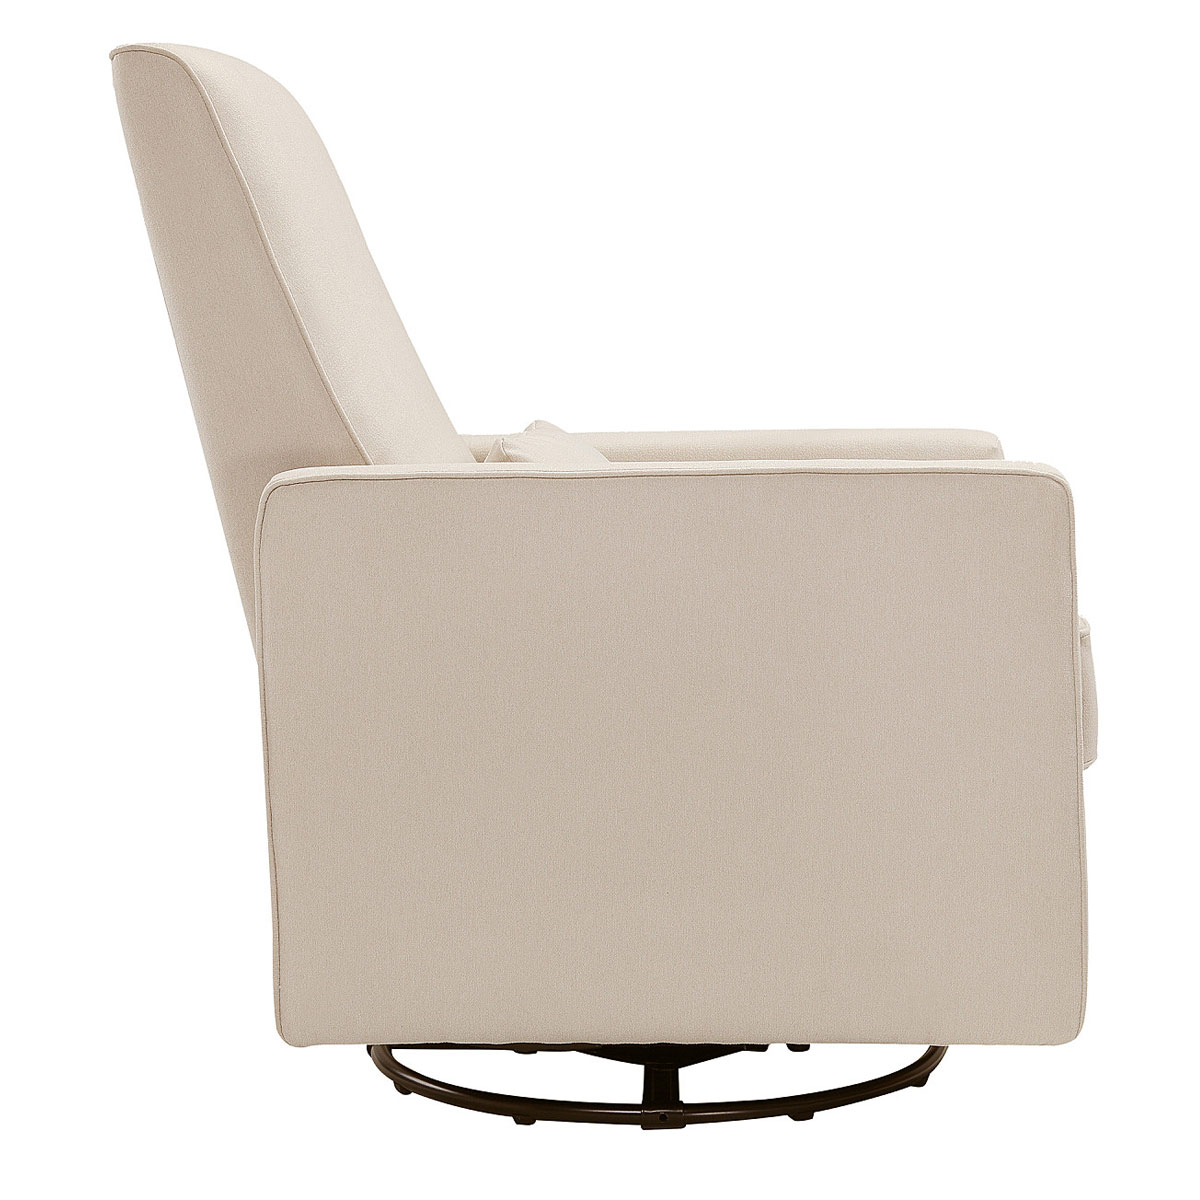 Awesome Davinci Piper All Purpose Upholstered Recliner In Cream Finish With Cream Piping Machost Co Dining Chair Design Ideas Machostcouk